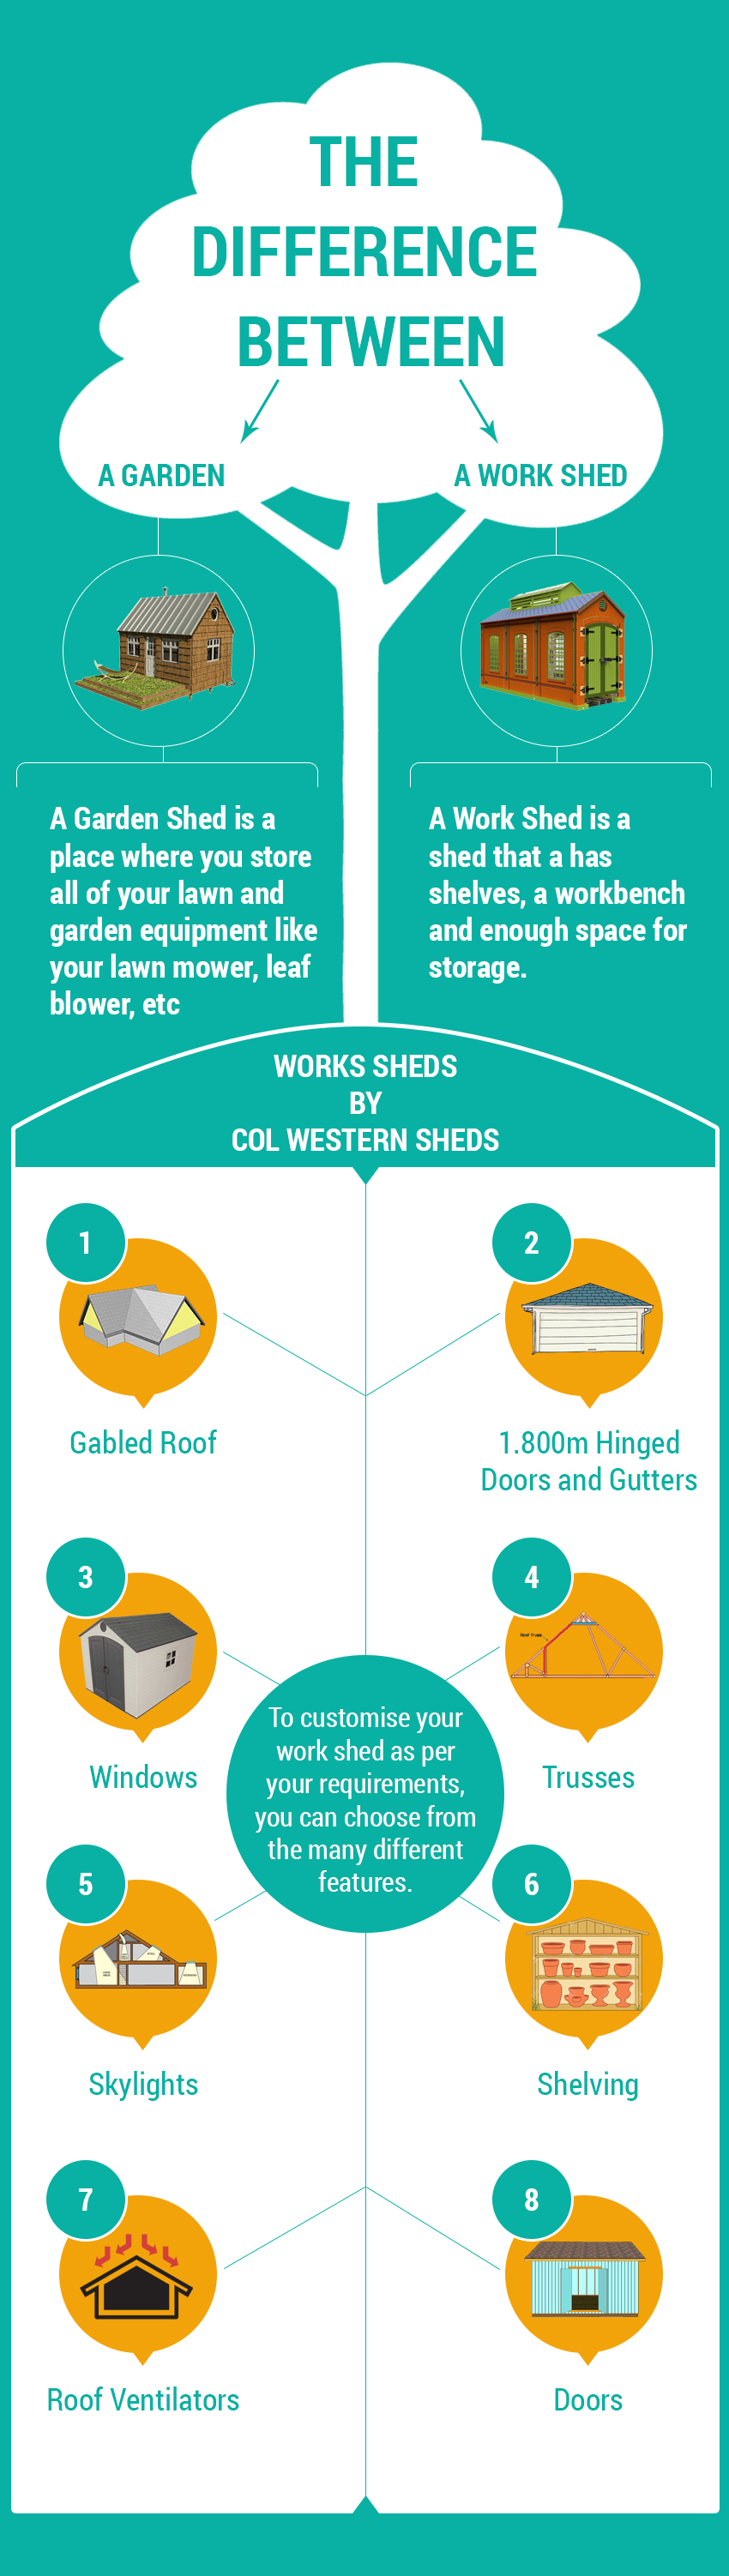 The Difference Between A Garden Shed And A Work Shed